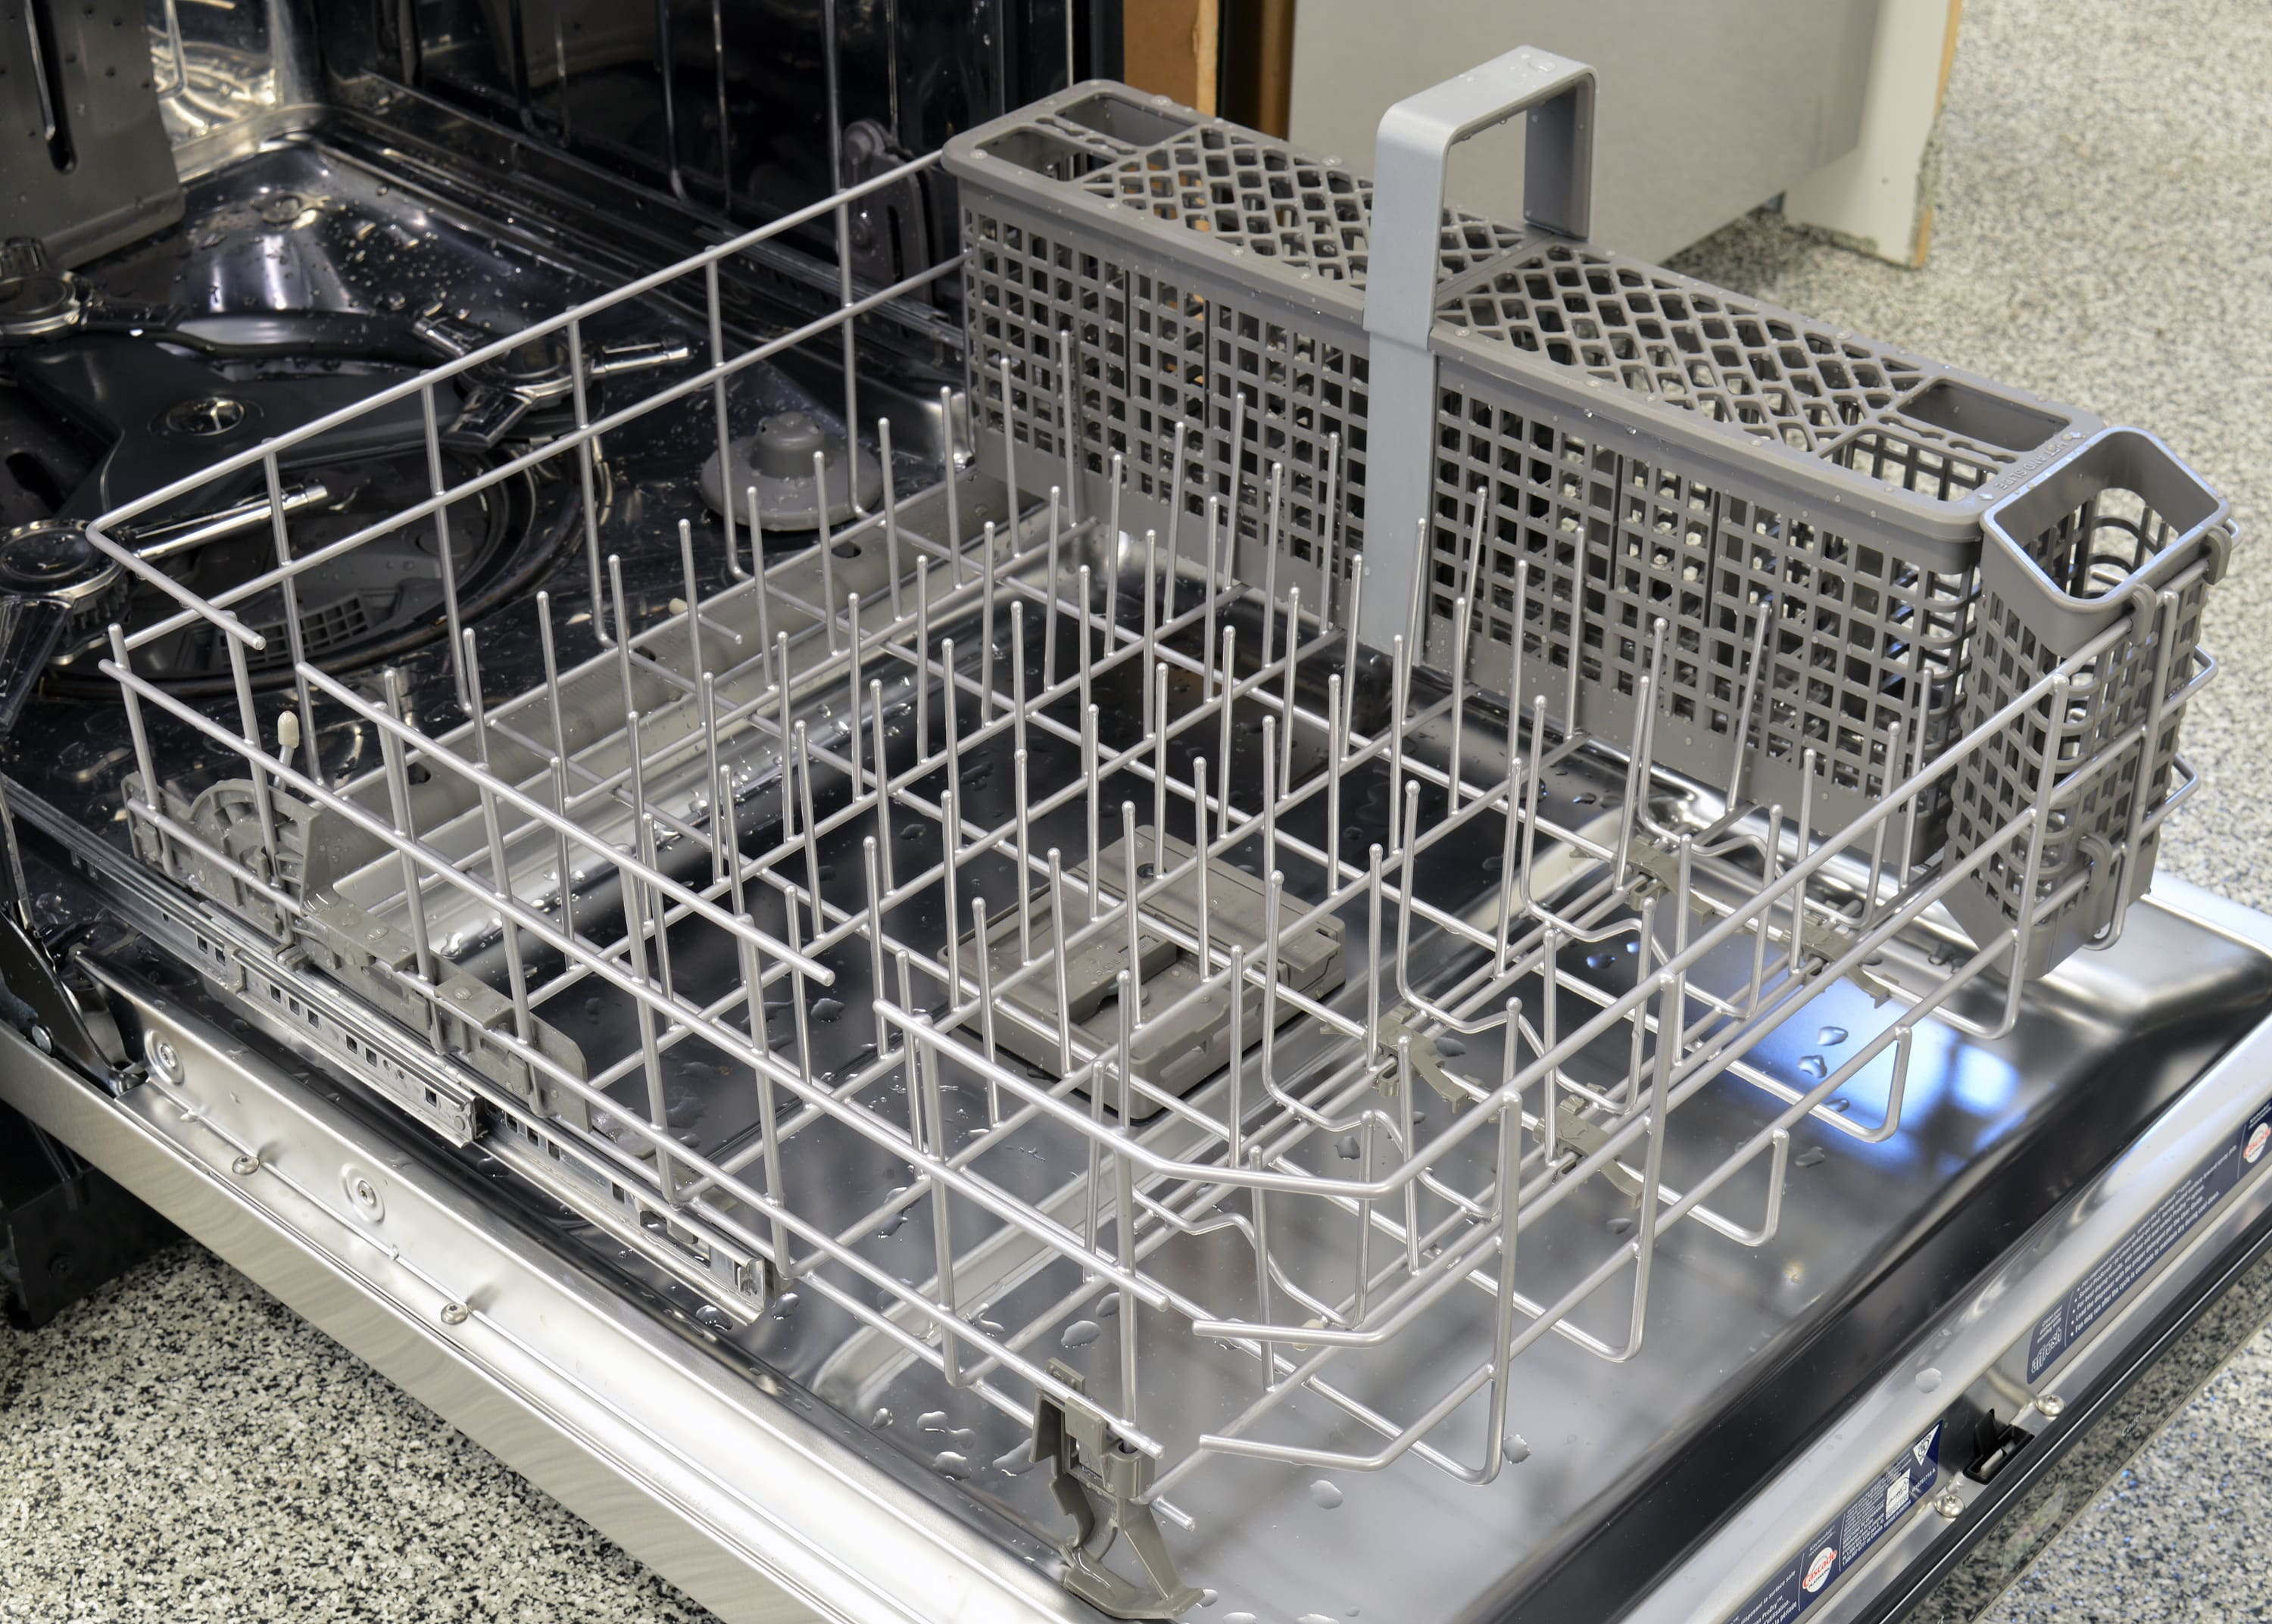 Kitchenaid Dishwasher Racks - Kitchen Appliances Tips And Review